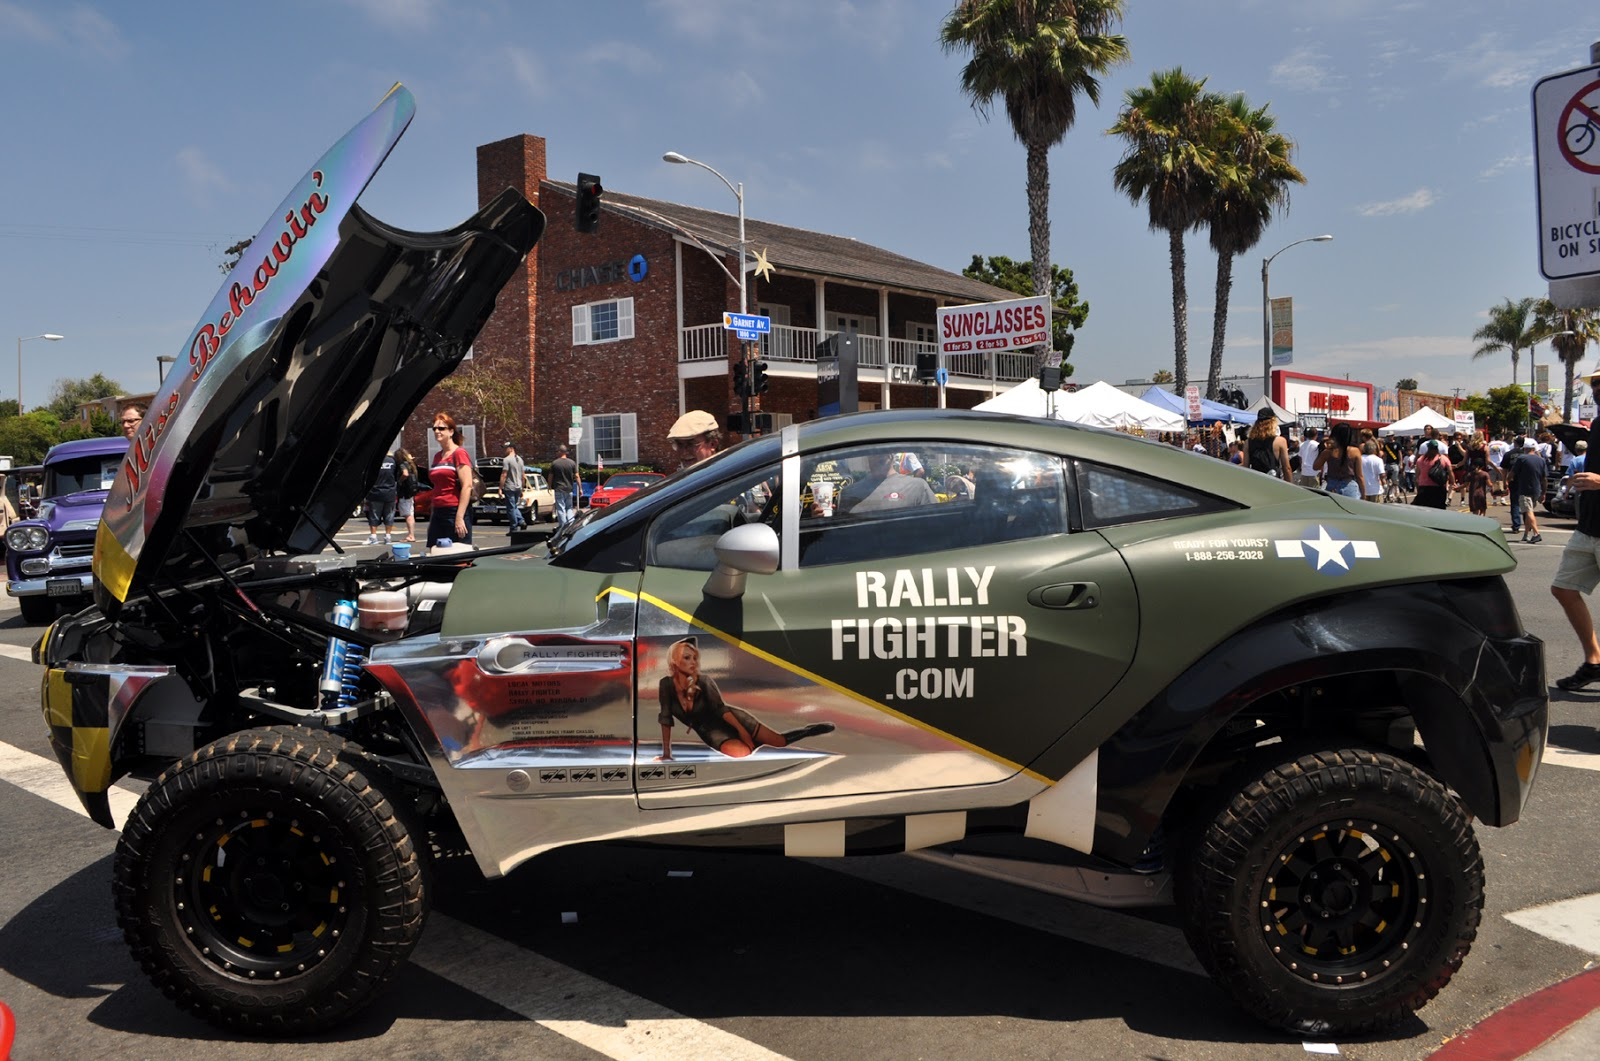 Just A Car Guy There Was A Local Motors Rally Fighter At